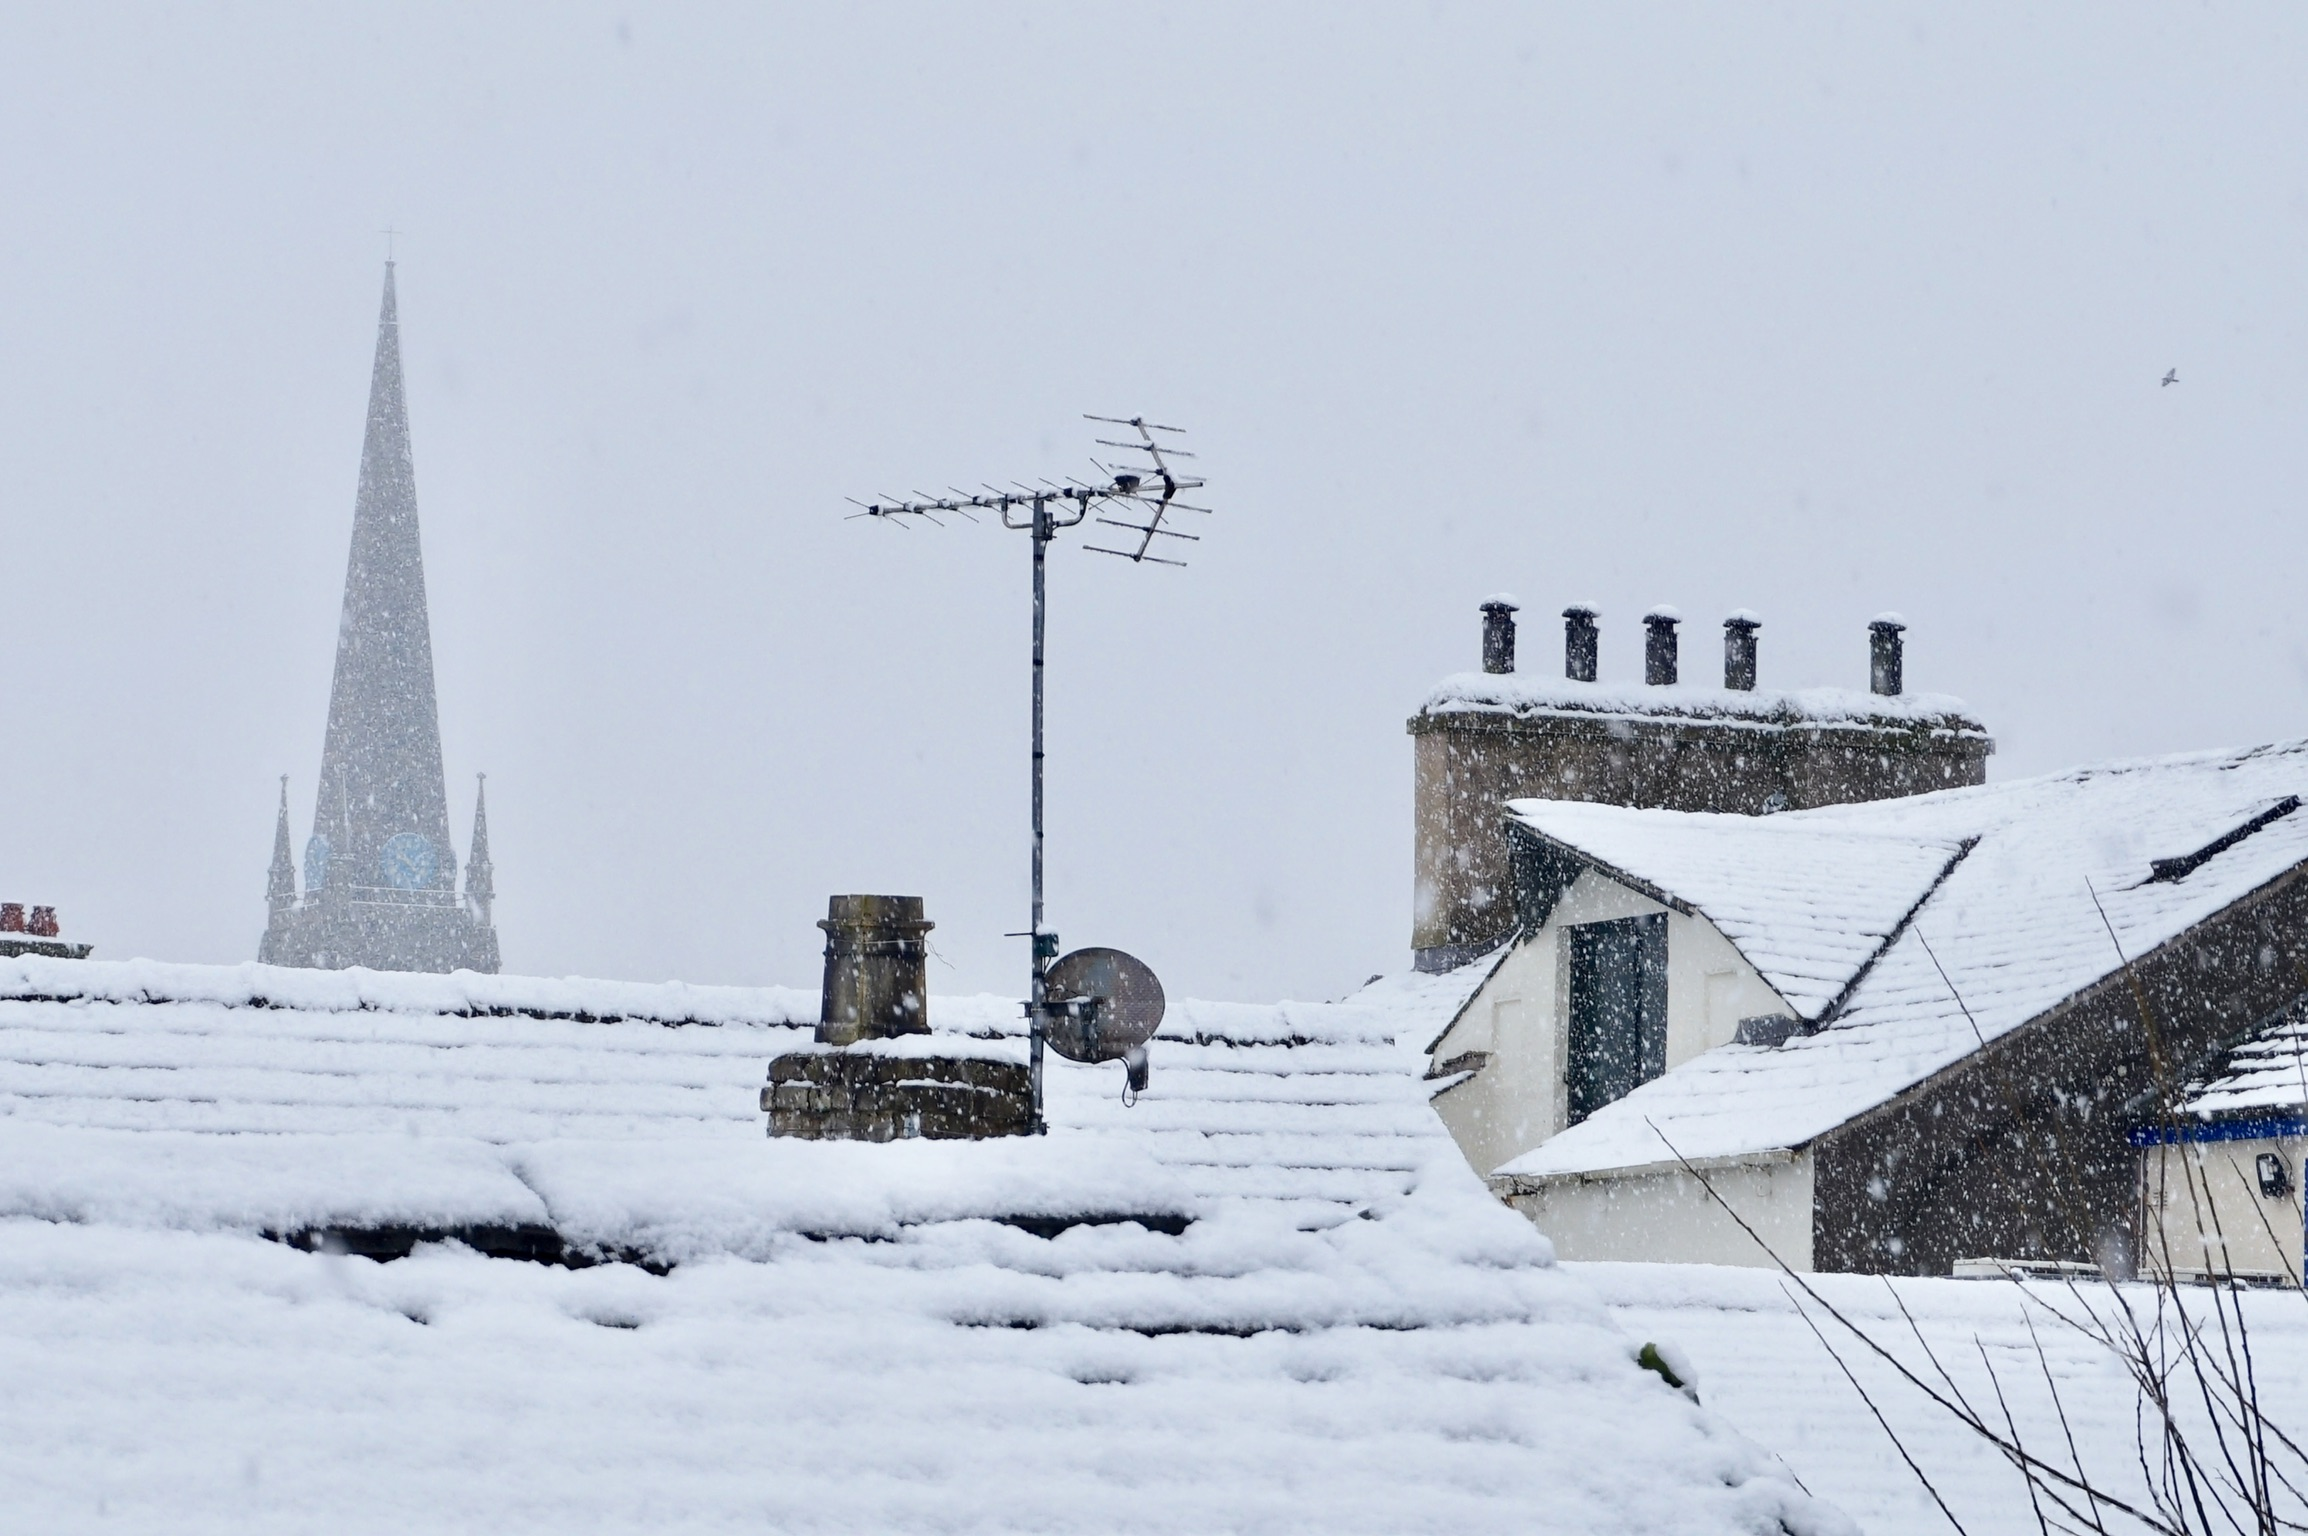 cold roofs with sonw on them - looks like they'll need a chimney sheep fitting in the chimney!